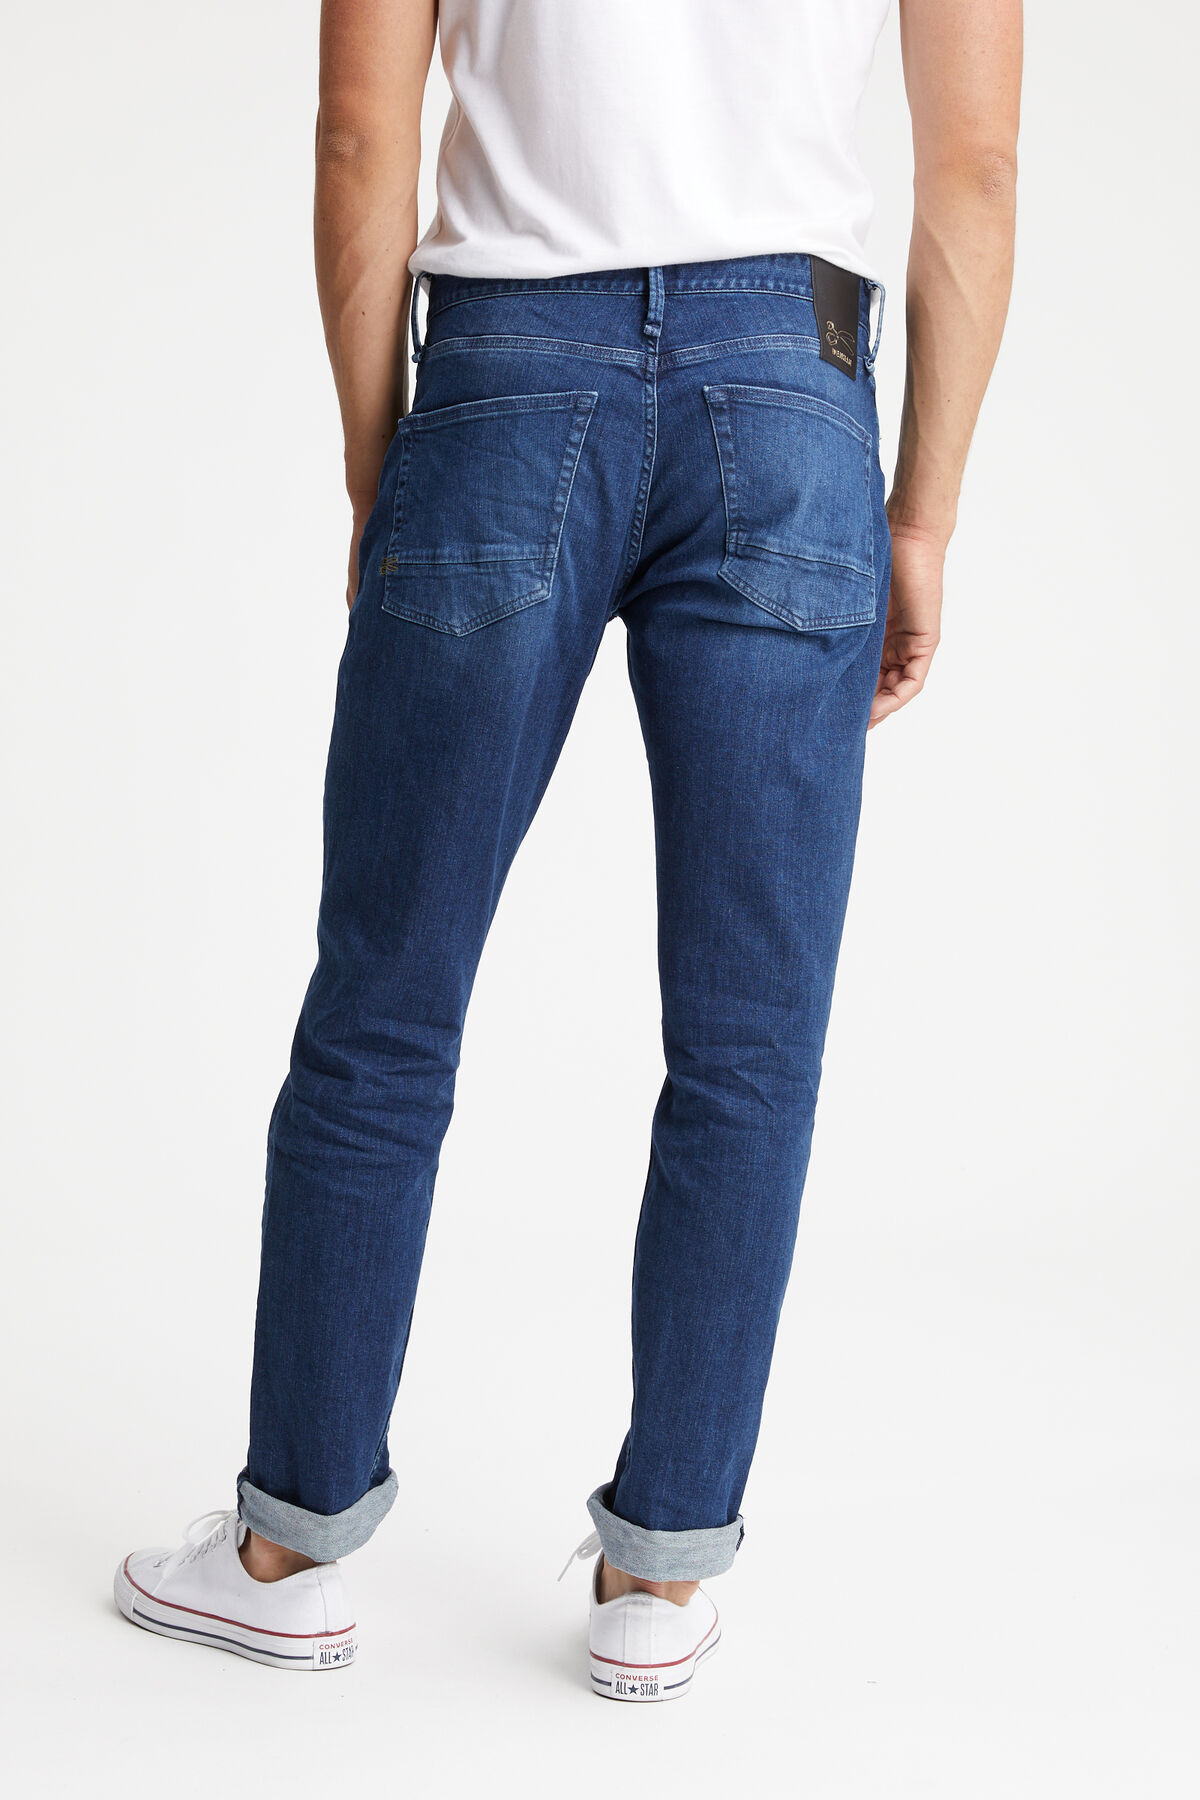 RAZOR Indigo Sustainable Denim - Slim Fit